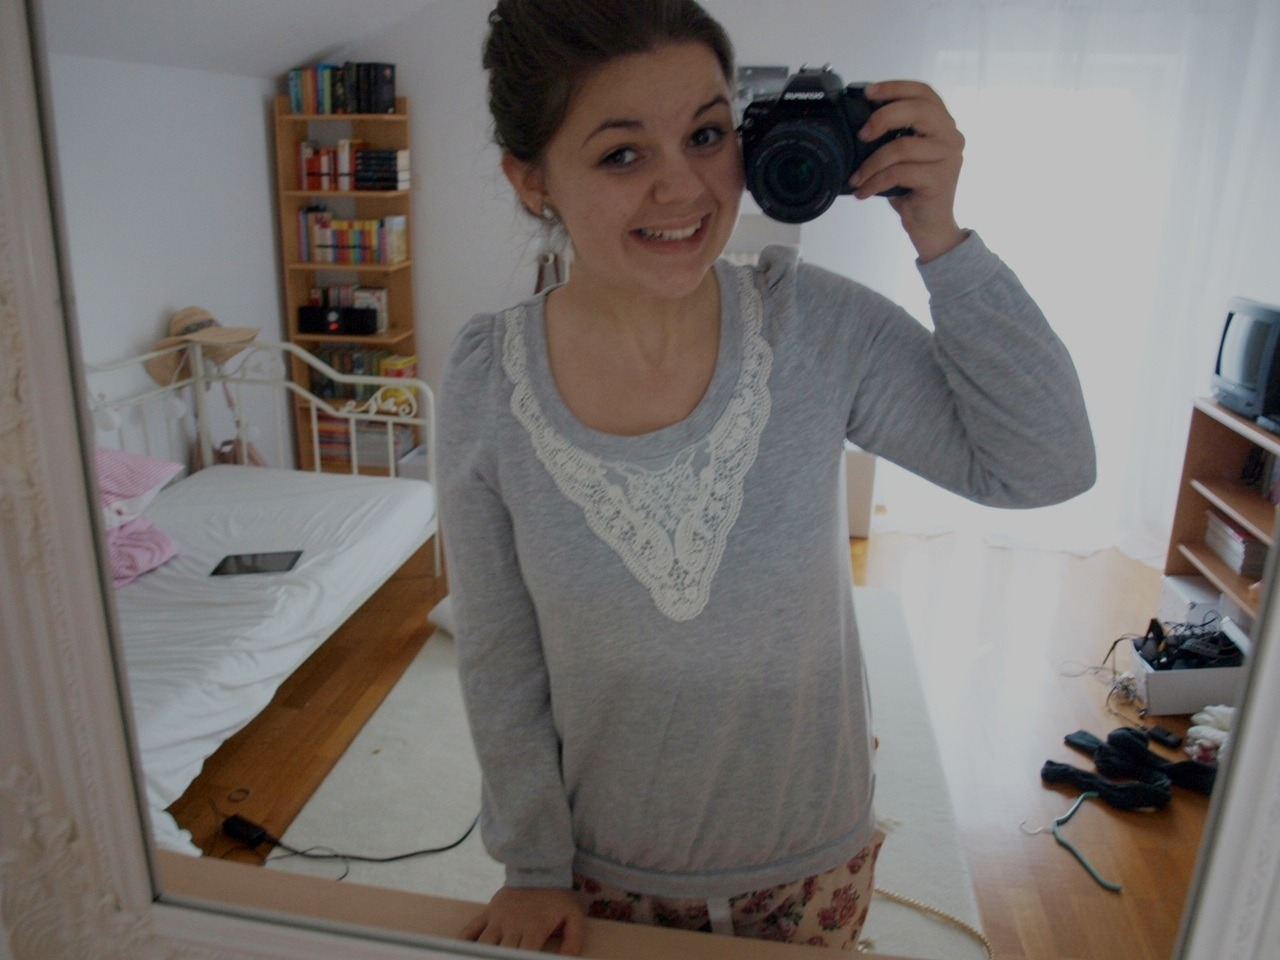 I basically look like a three year old in my pyjama. Not 16, no, 3 years old. And I also smile like 3 year old. And I don't wear any make-up. I am a 3 year old, I guess.